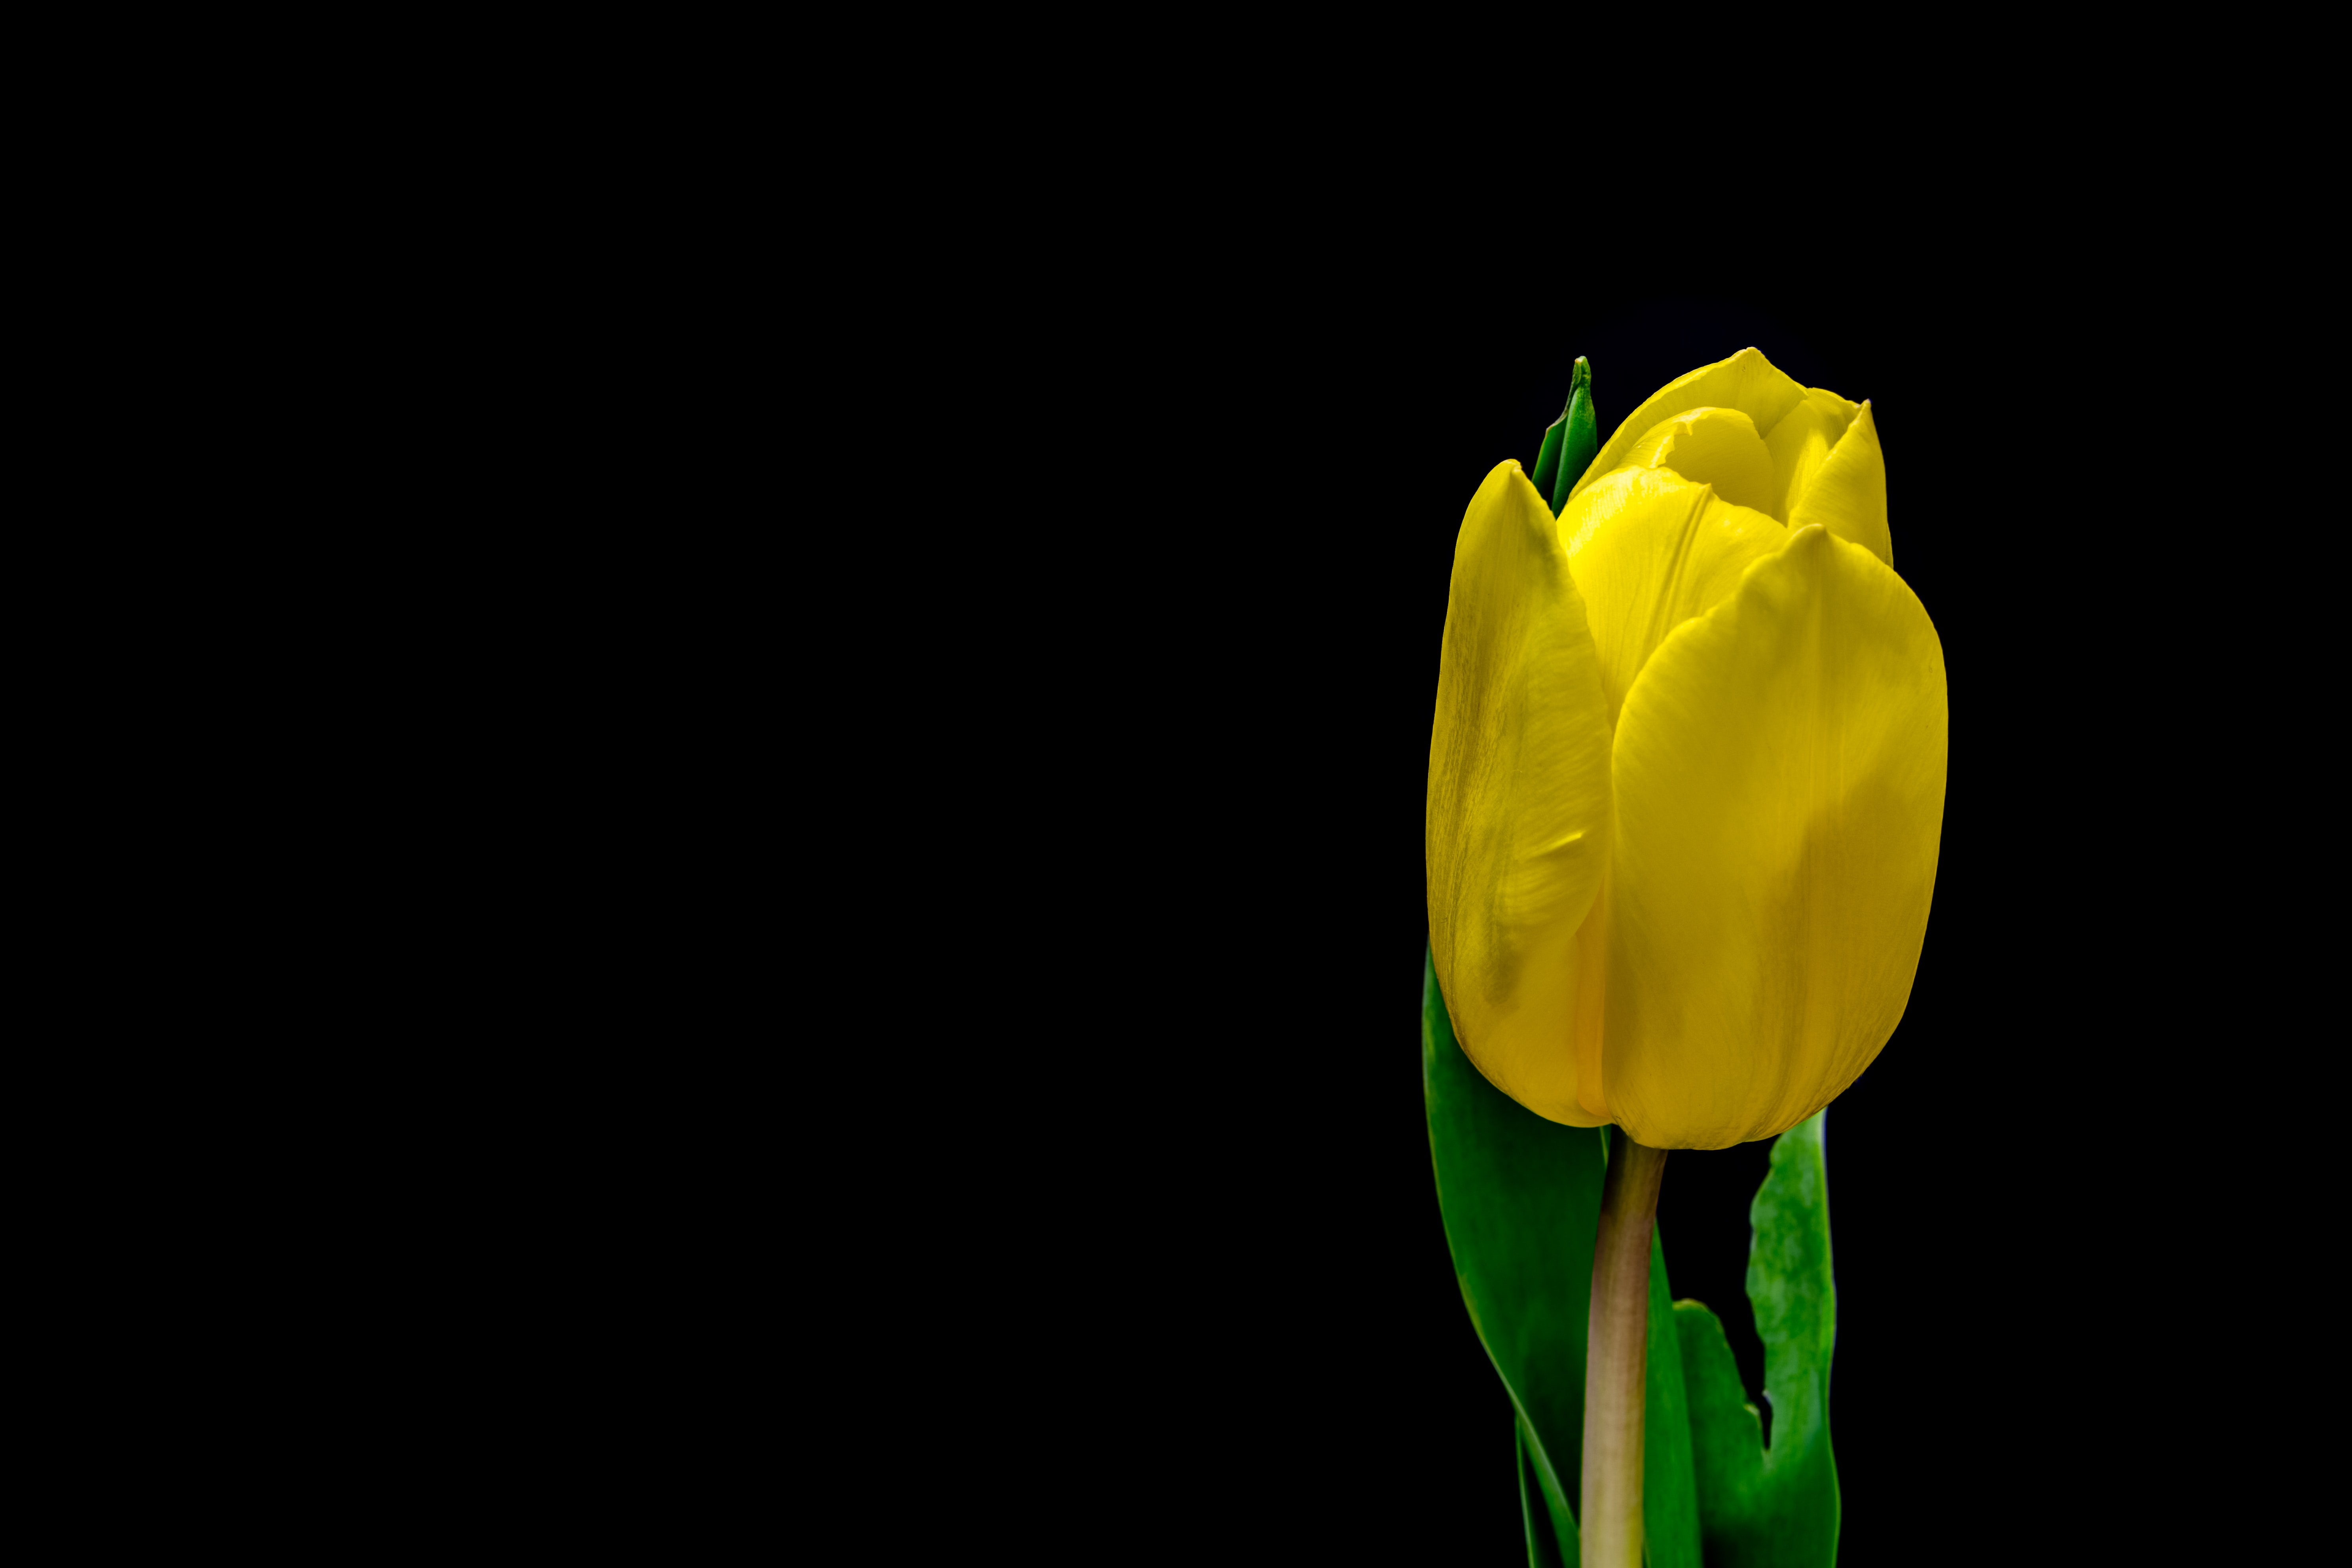 Yellow tulip growing against a black background